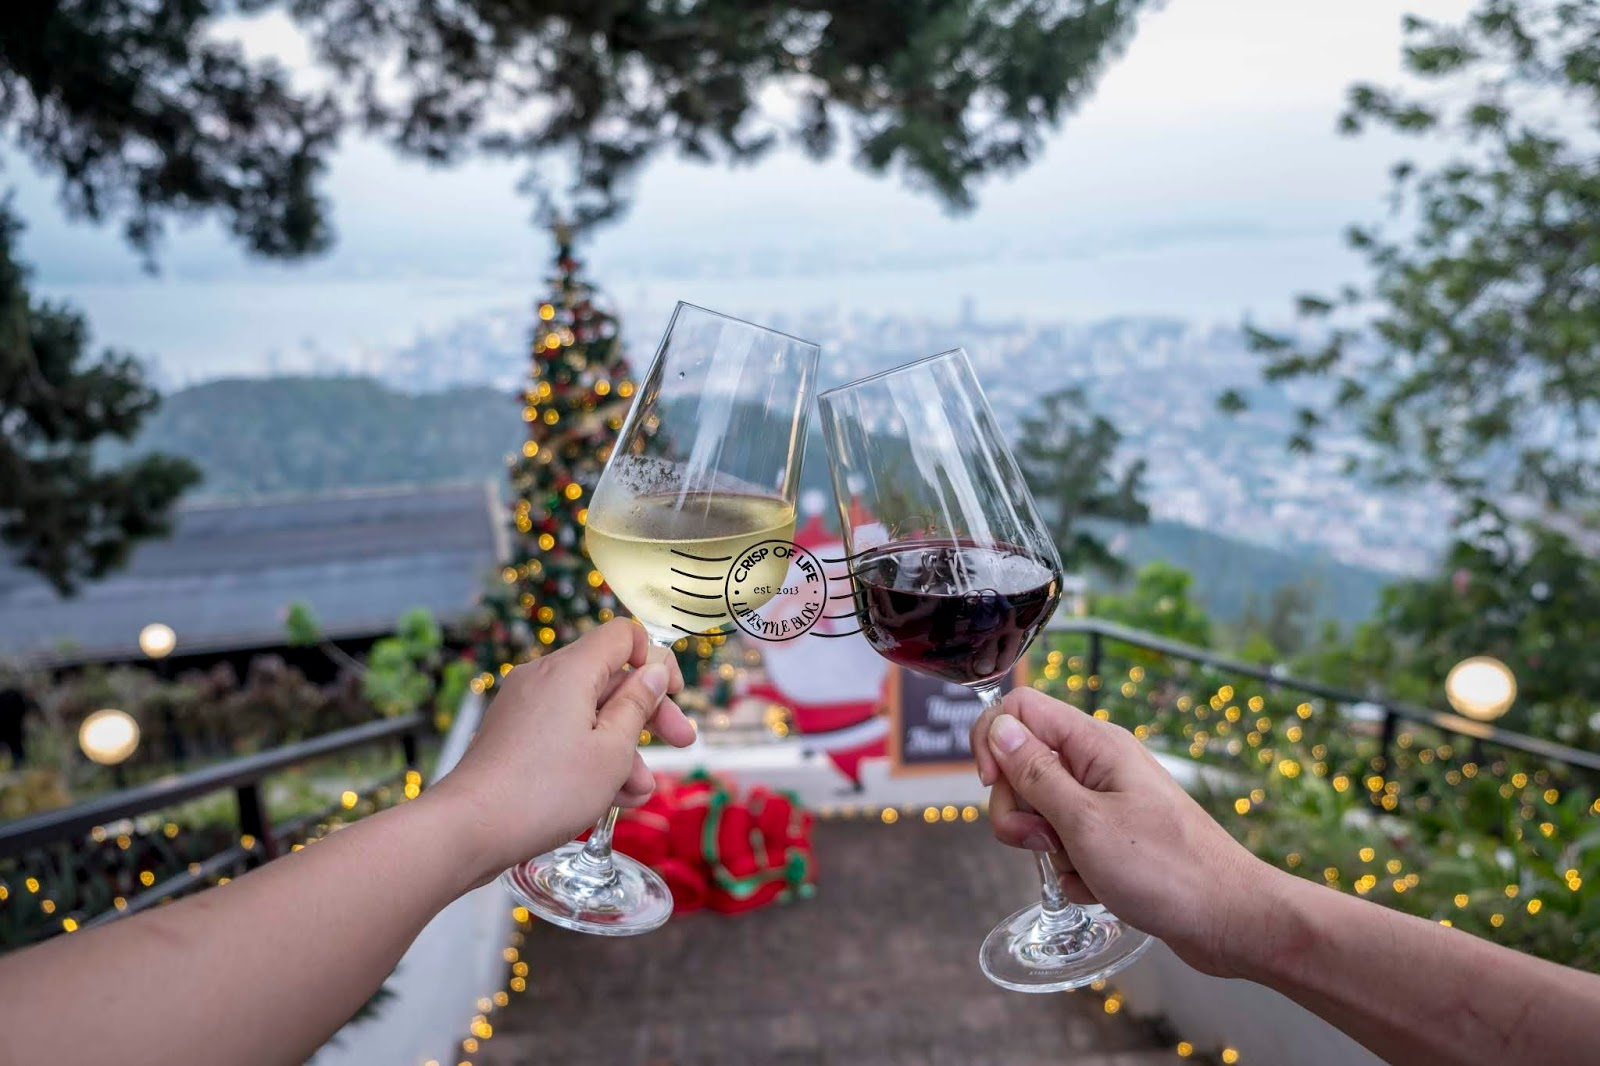 Celebrate Christmas and New Year with 5-course Dinner at Penang Hill David Brown's Restaurant & Tea Terrace